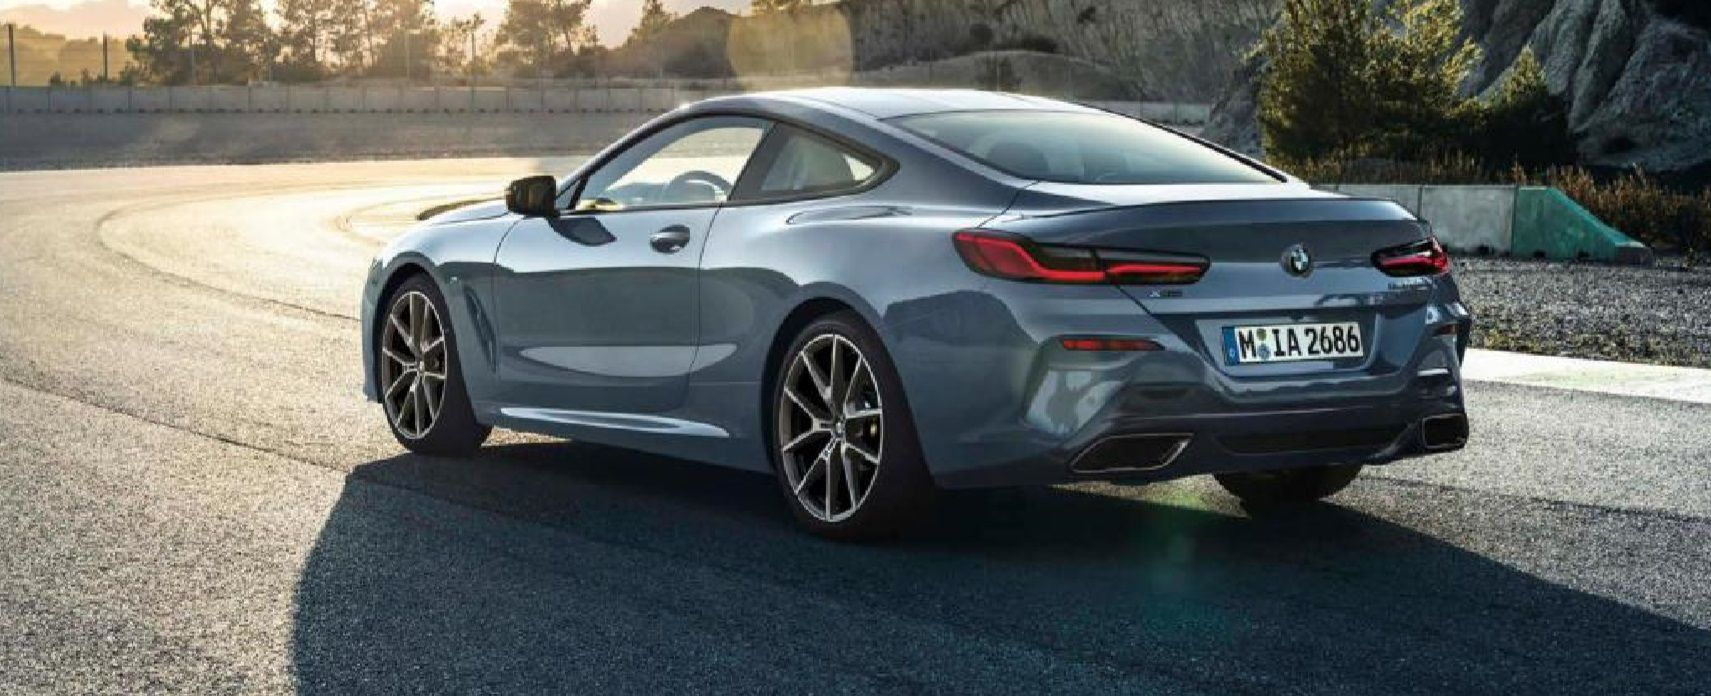 2019 Bmw 850i Xdrive 02 Hd Image 1